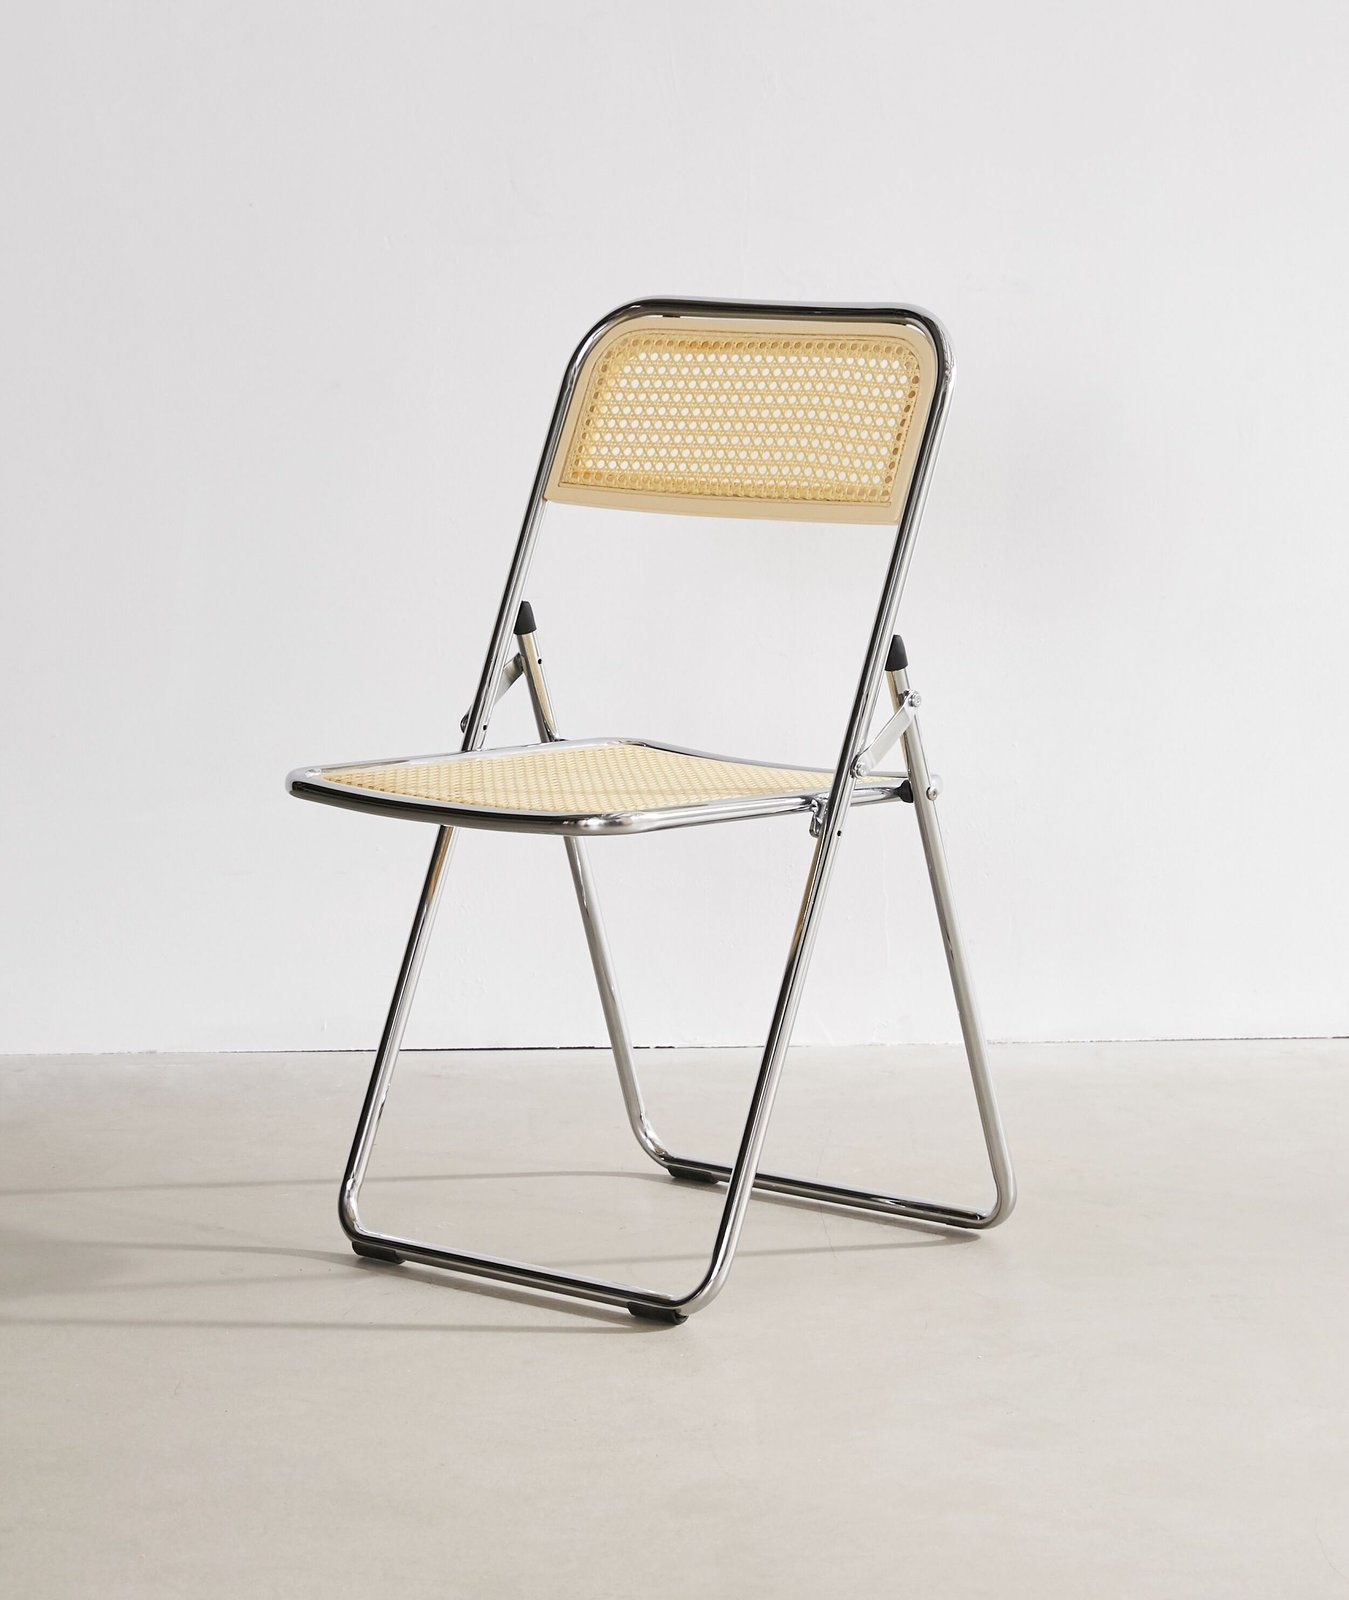 Urban Outfitters Coretta Folding Chair